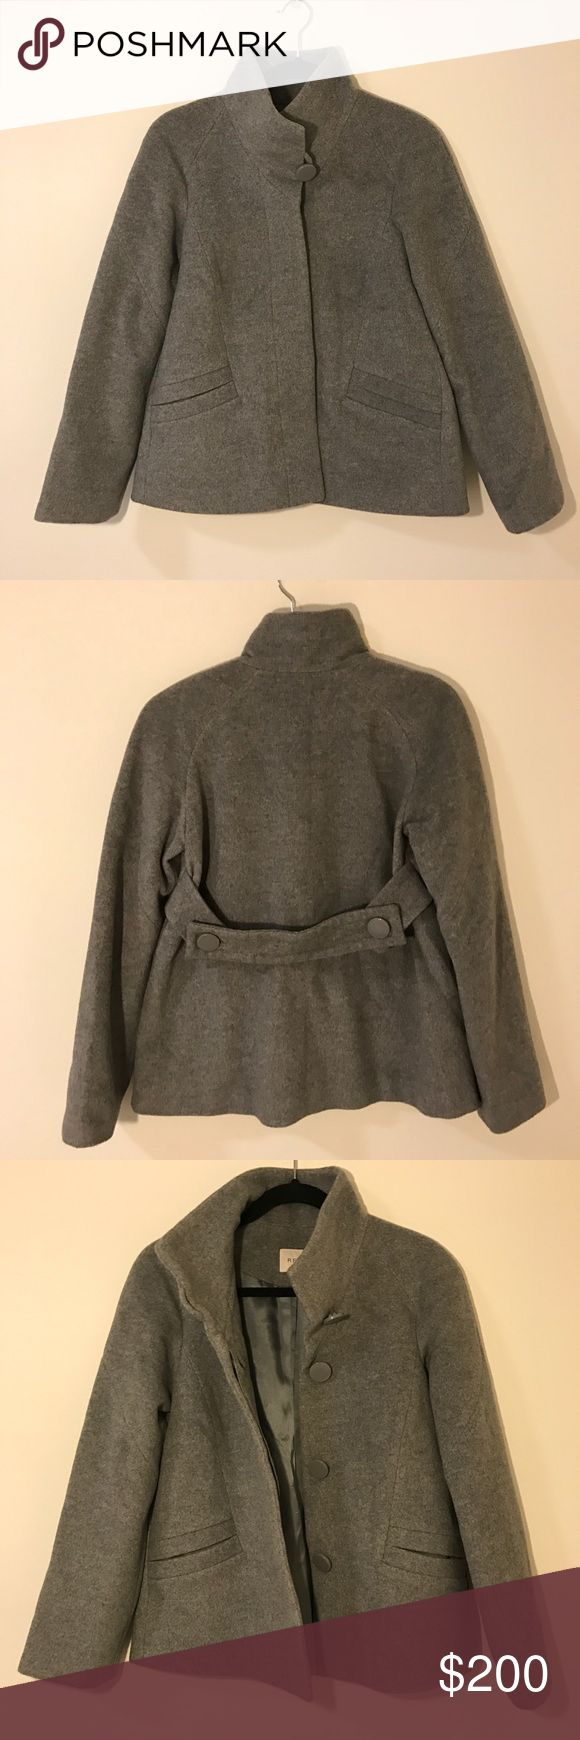 Reiss gray wool coat Worn a couple times, in excellent condition! 35% wool Reiss Jackets & Coats